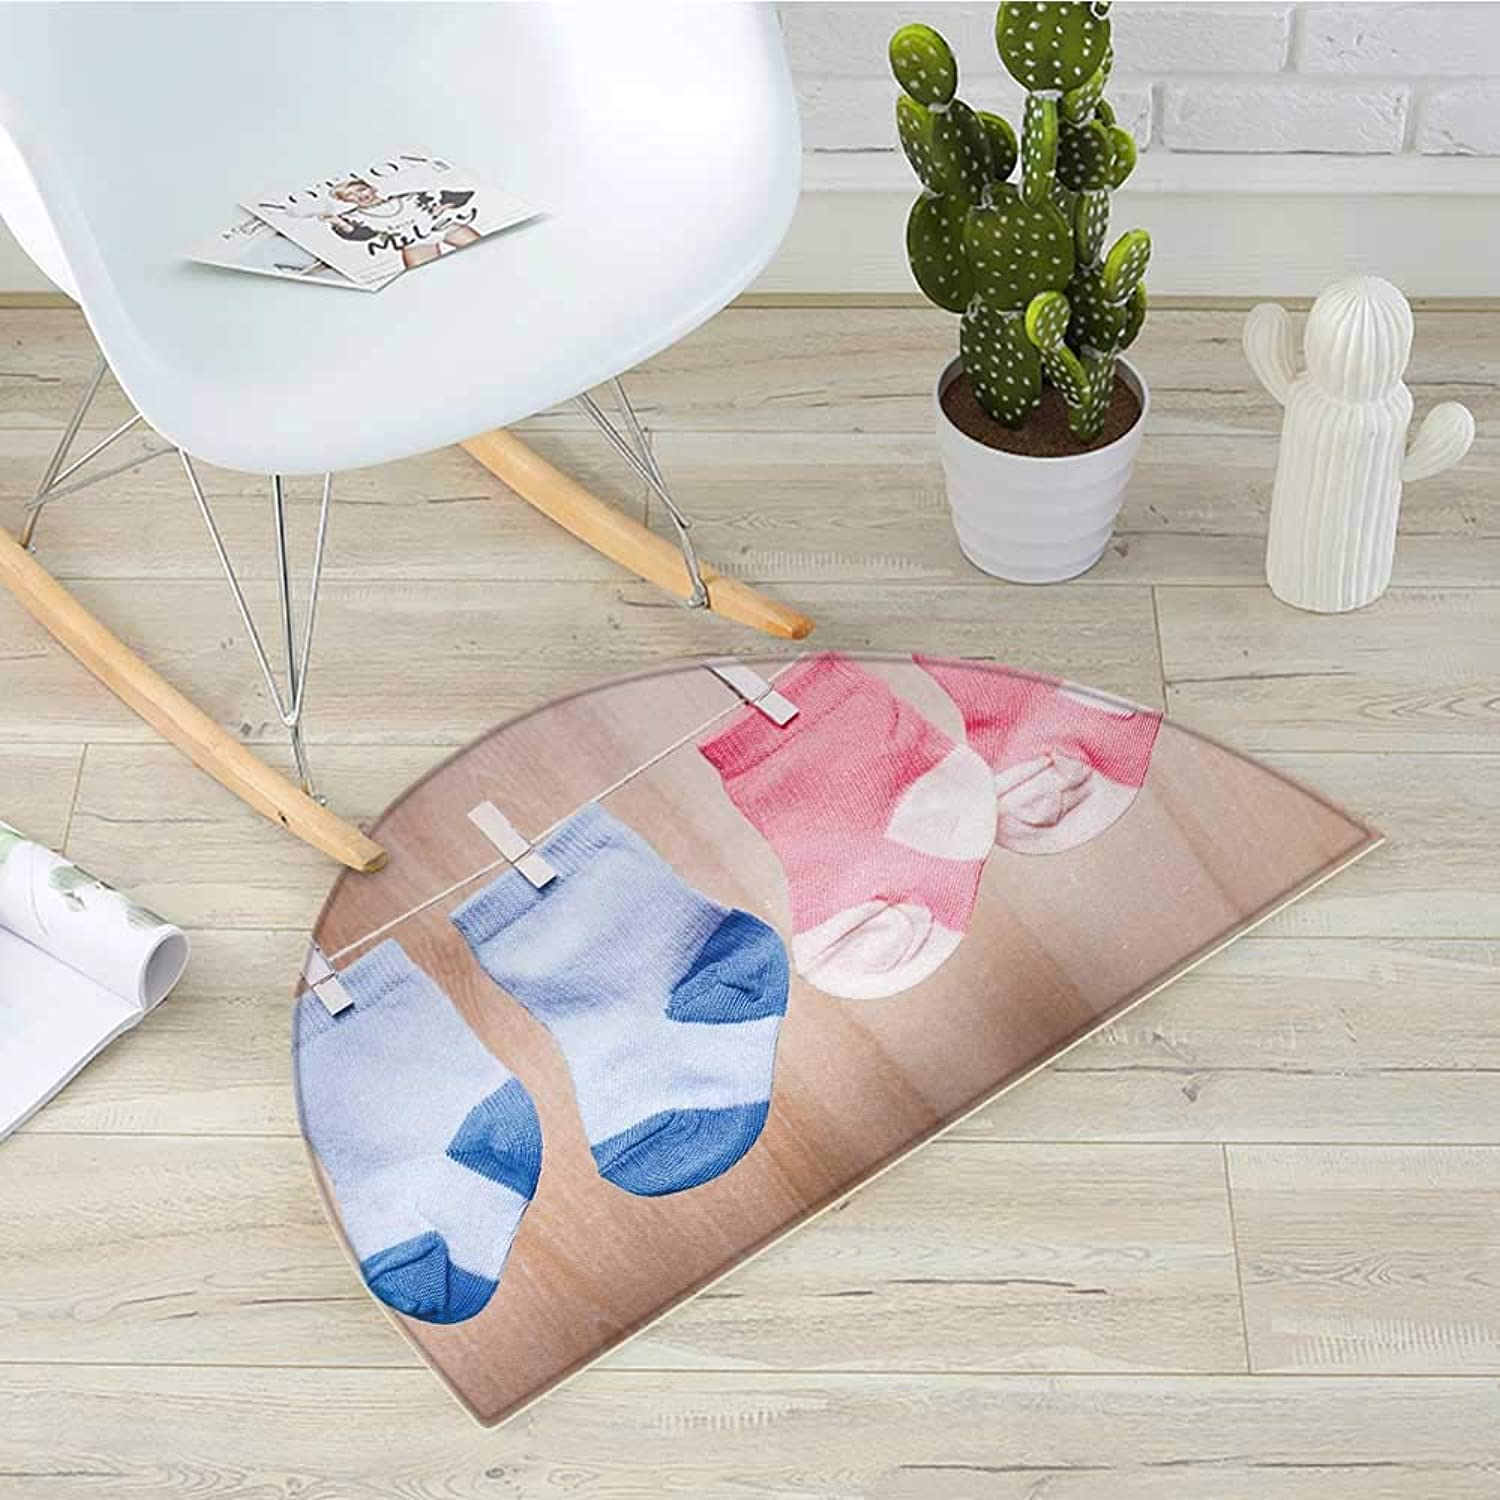 Gender Reveal Half Round Door mats Baby Socks Attached to Rope Cute Birthday Birth in The Family Image Bathroom Mat H 31.5  xD 47.2  Pink Coral bluee